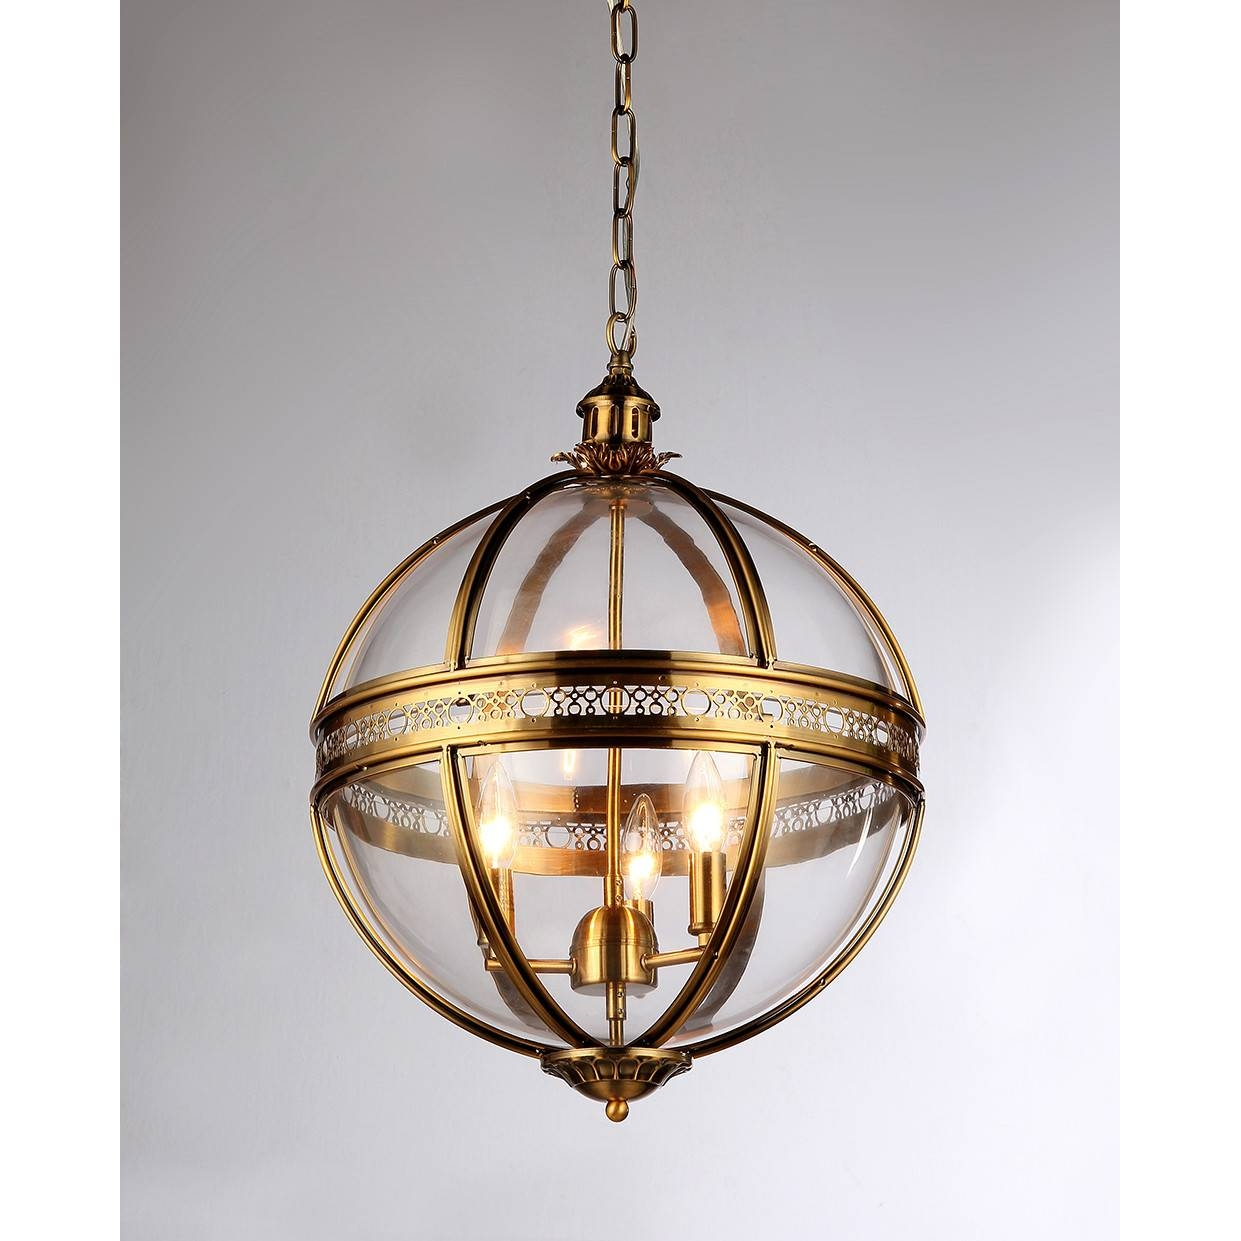 Look For Less: Restoration Hardware Victorian Hotel Pendant | The with regard to Victorian Hotel Pendants (Image 12 of 15)